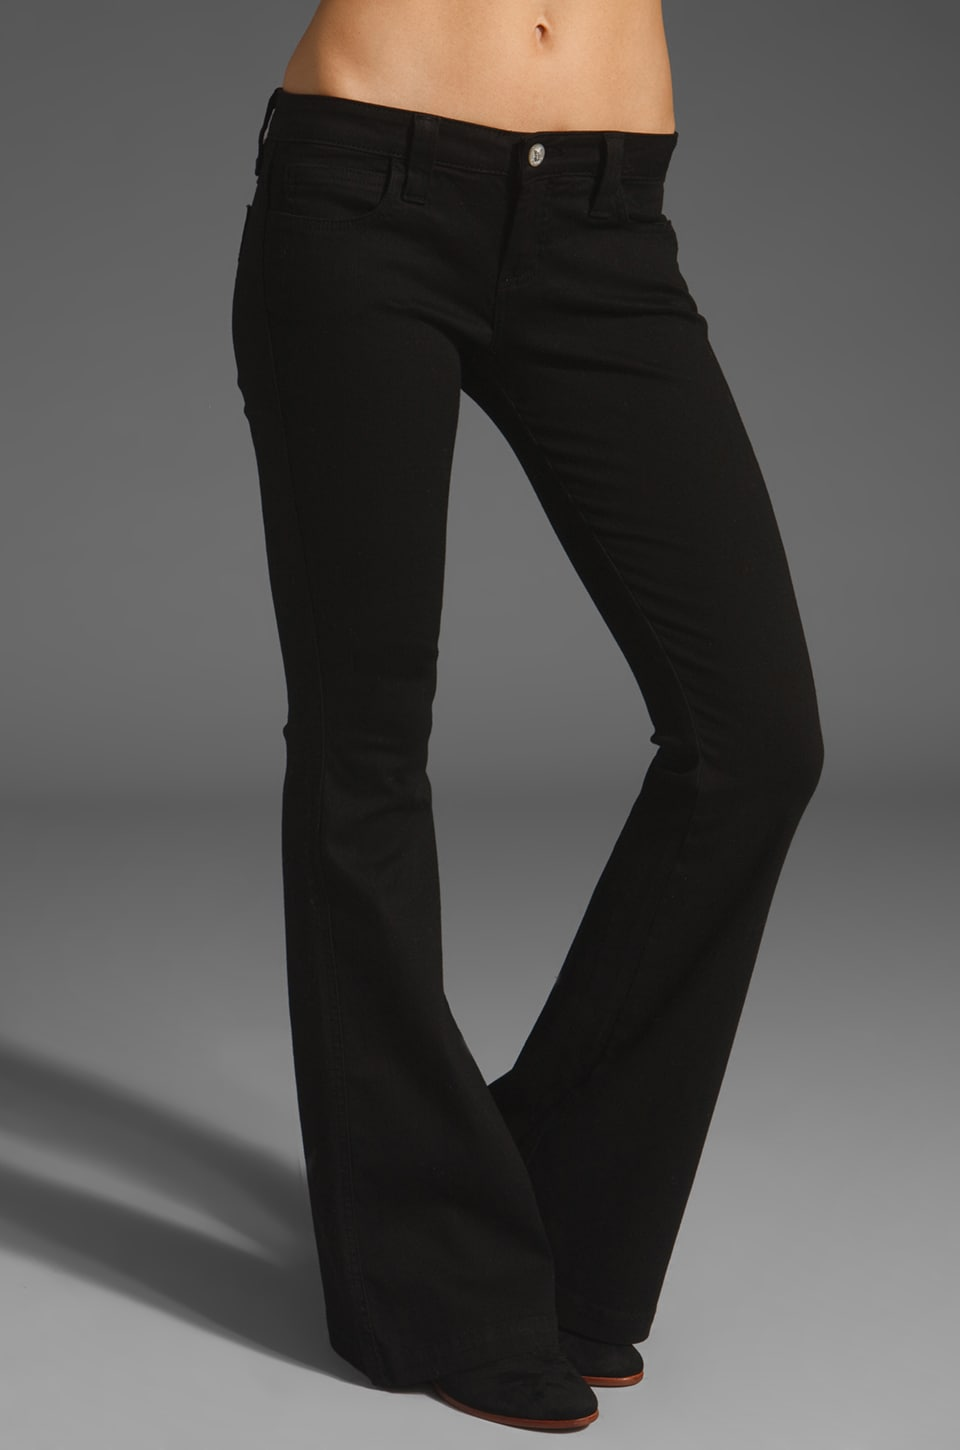 Frankie B. Jeans Limited Edition Famous Bootcut Jean in Black